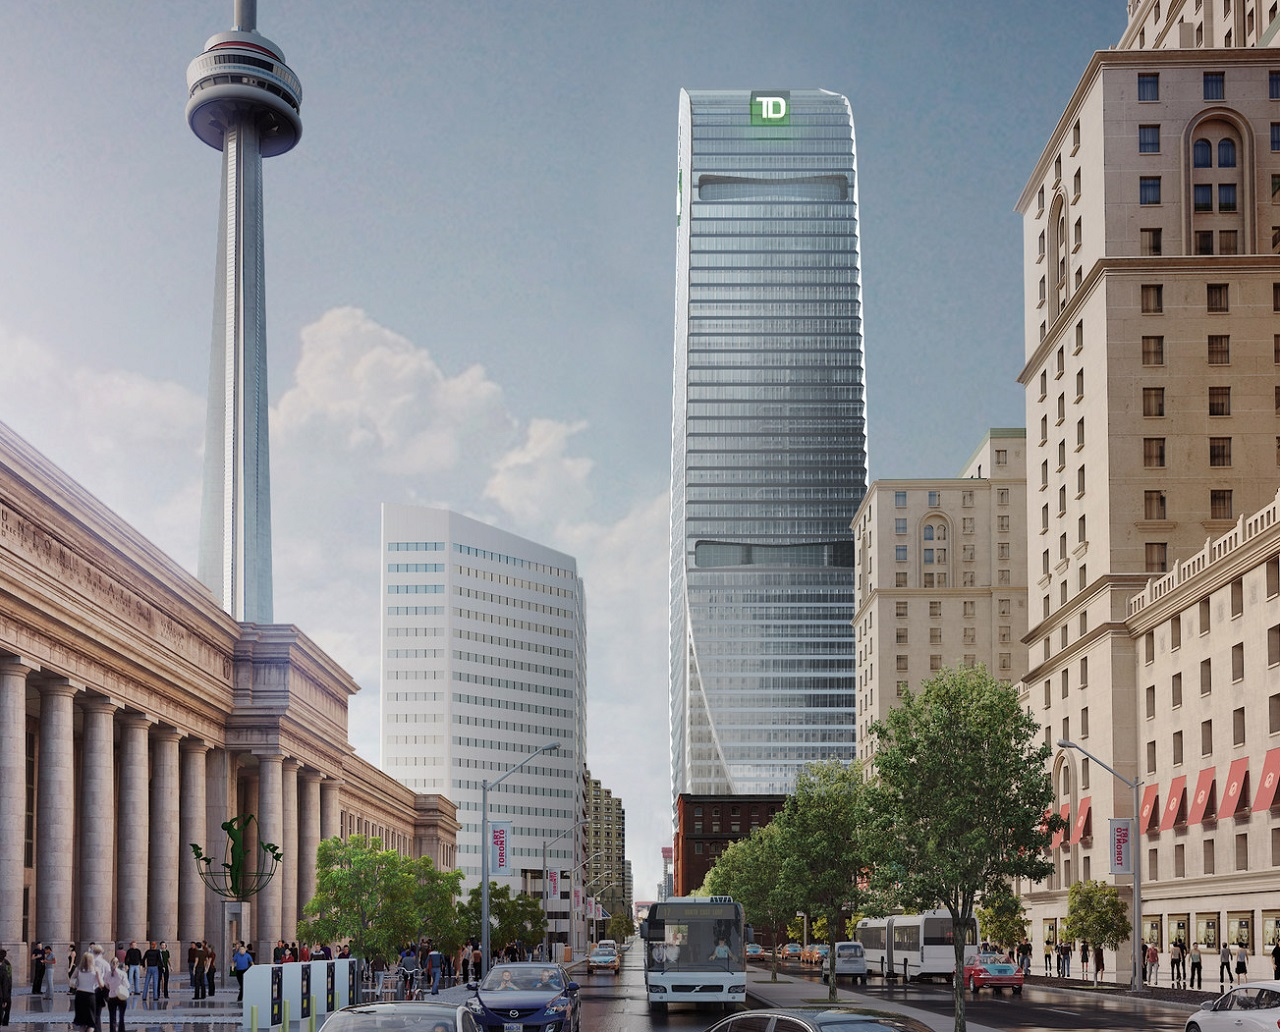 Cadillac_Fairview_Cadillac_Fairview_and_Investment_Management_Co - Copy.jpg